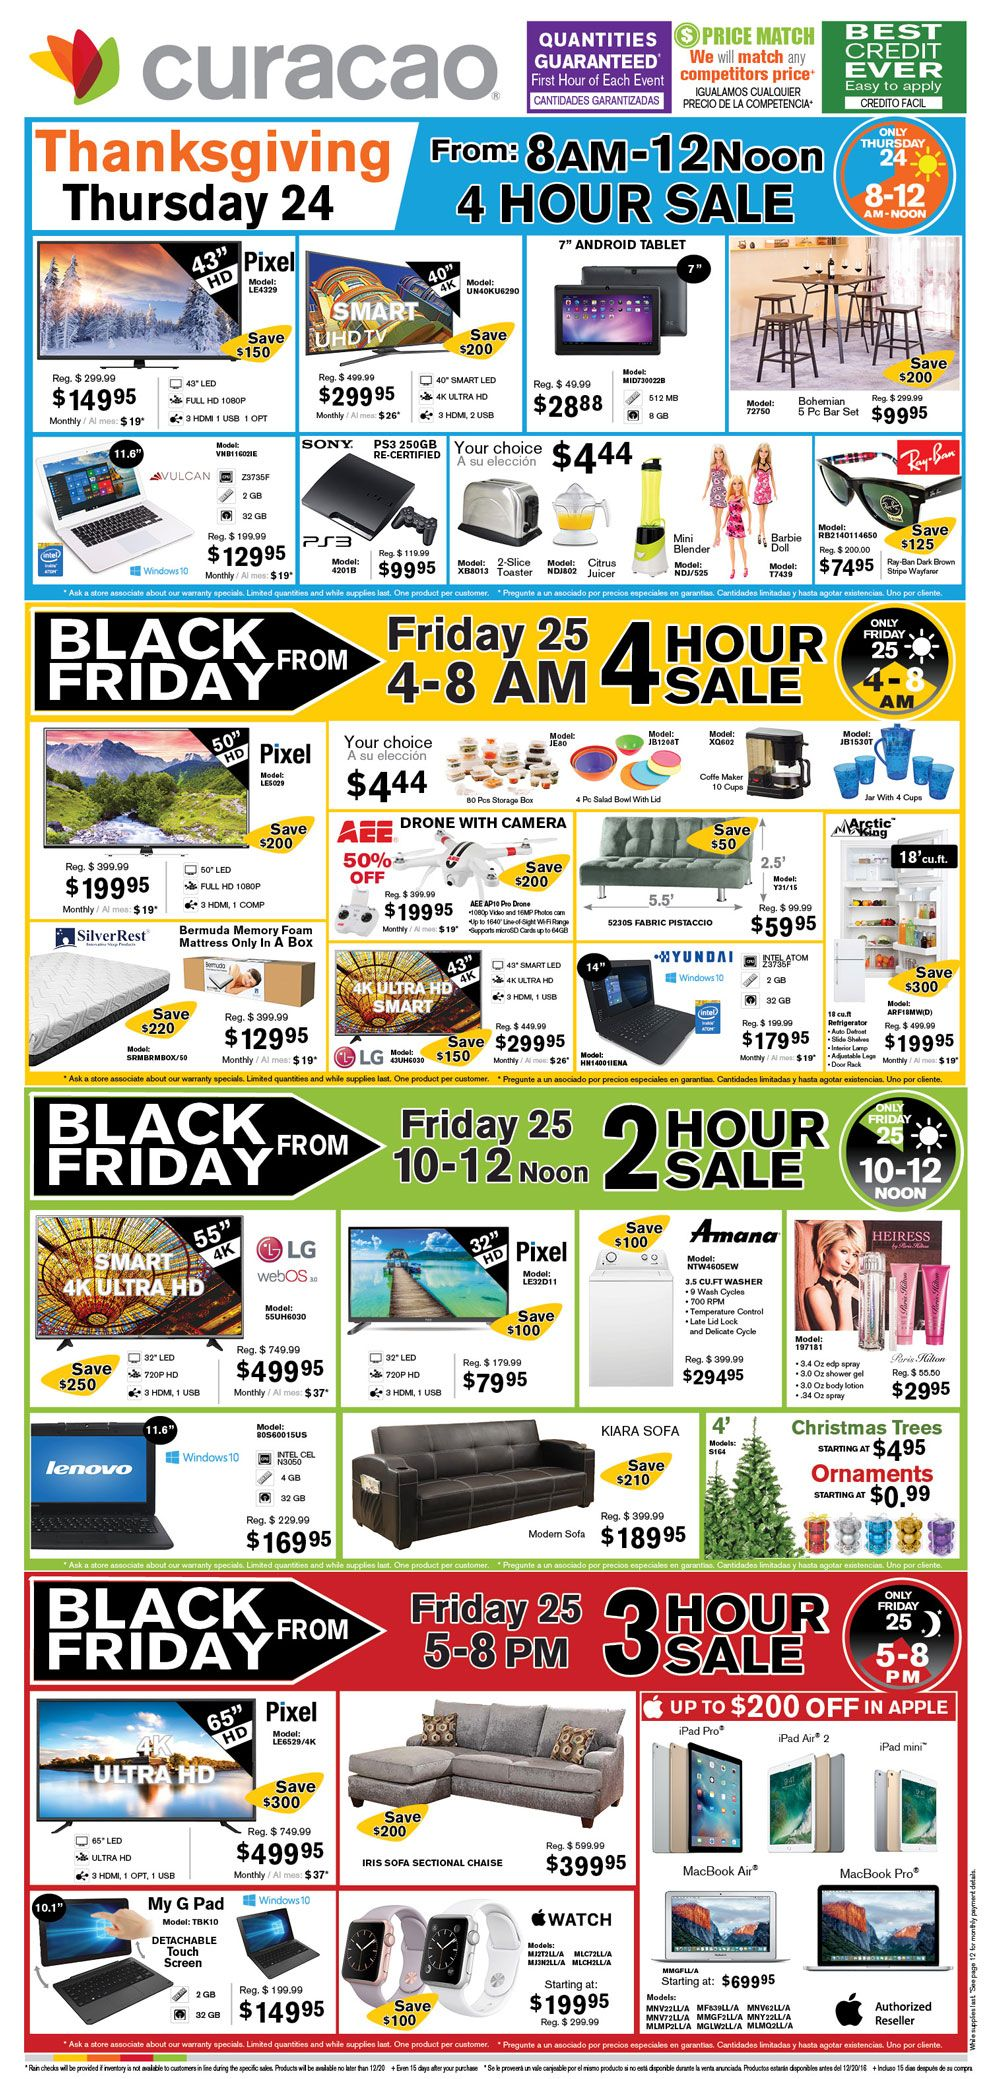 Curacao Black Friday Ad Http Www Hblackfridaydeals Com Curacao Black Friday Deals Sales Ads